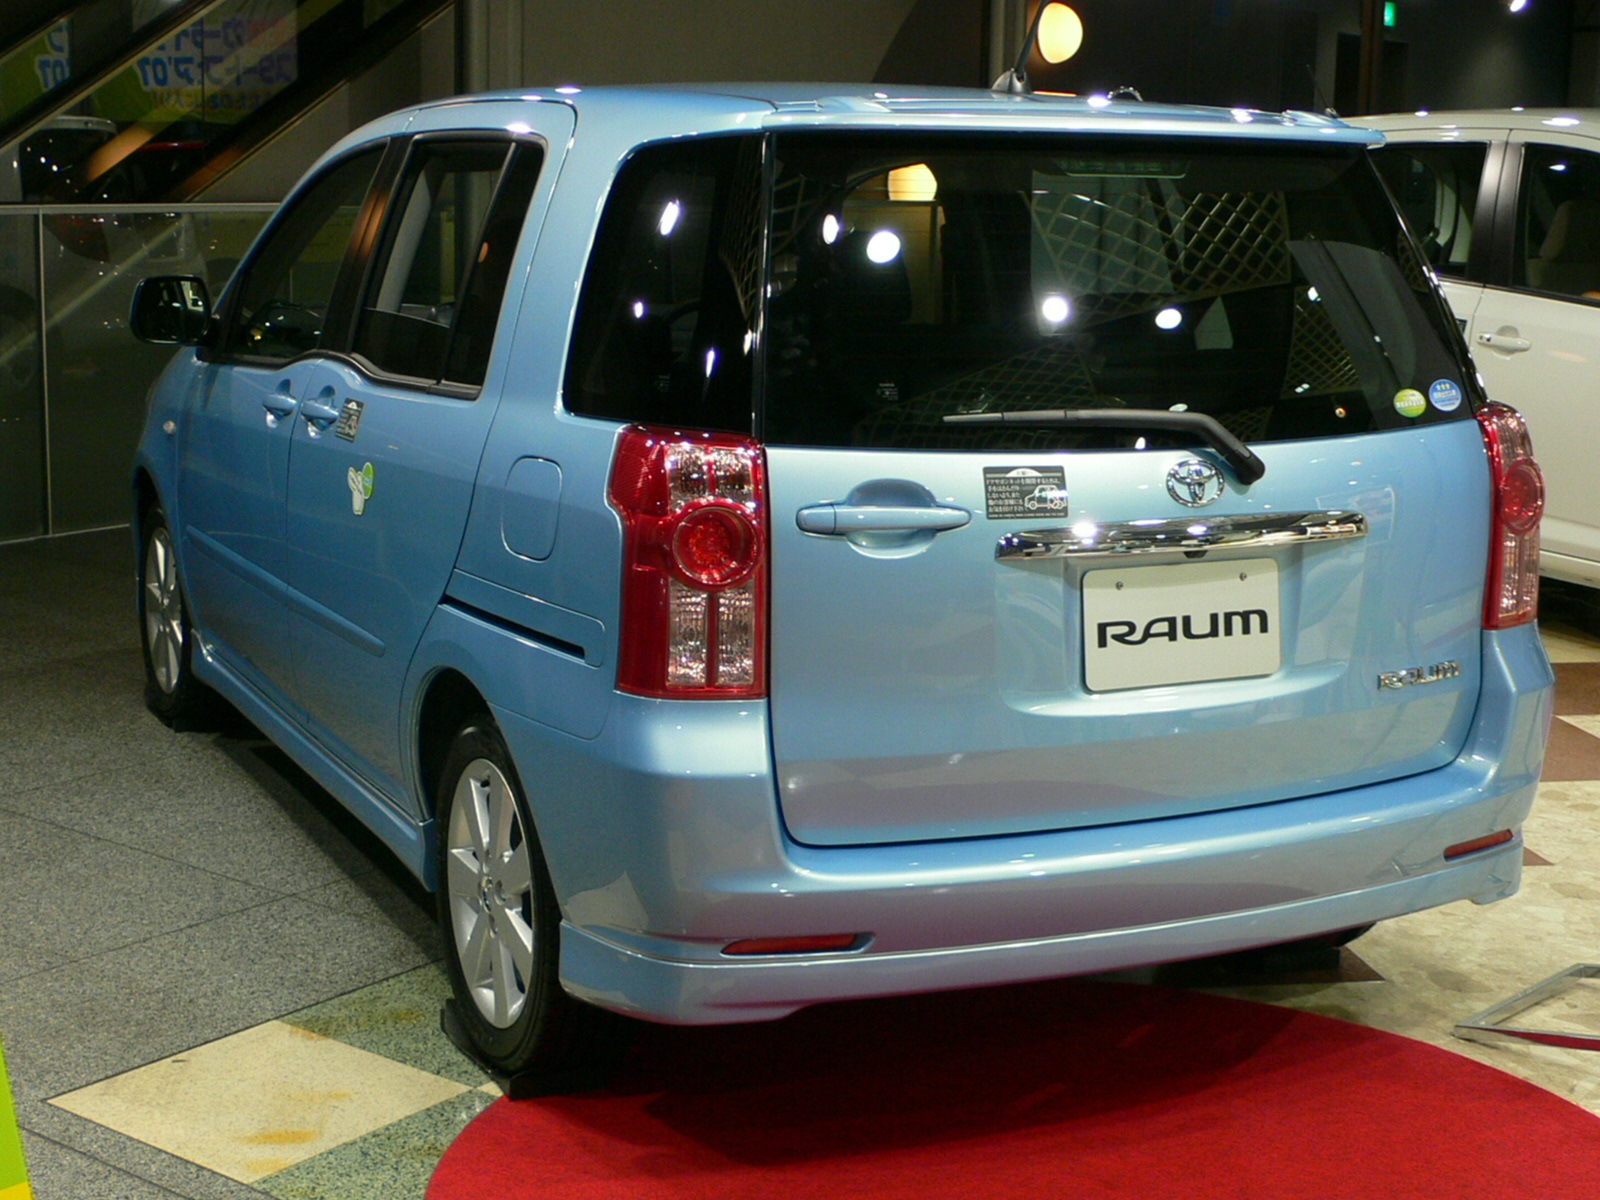 1085652 original Bugatti Royale Makes Public Appearance Is A Modern Version Next likewise Outlander Phev 2014 additionally Carbon Maxima F2mLjFLieZUstIUMT1SBTVsh 7CEARjgTm 7Cvw8kk4GR4s likewise 2017 Toyota Avanza further Volkswagen Santana Quantum Physics In China. on old toyota cars